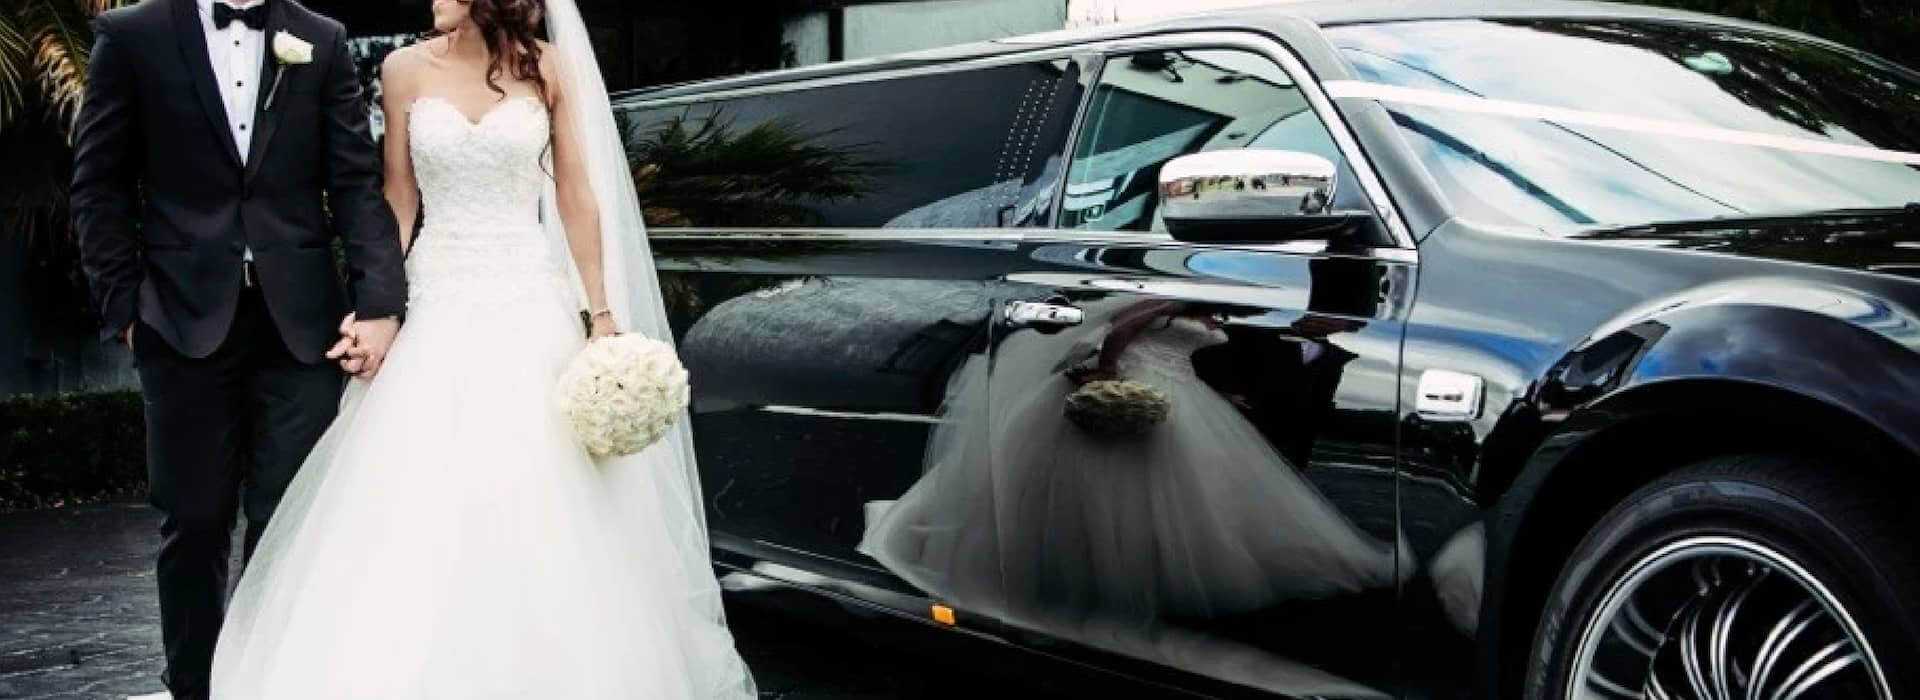 Contact us- For Limo Needs in Calgary